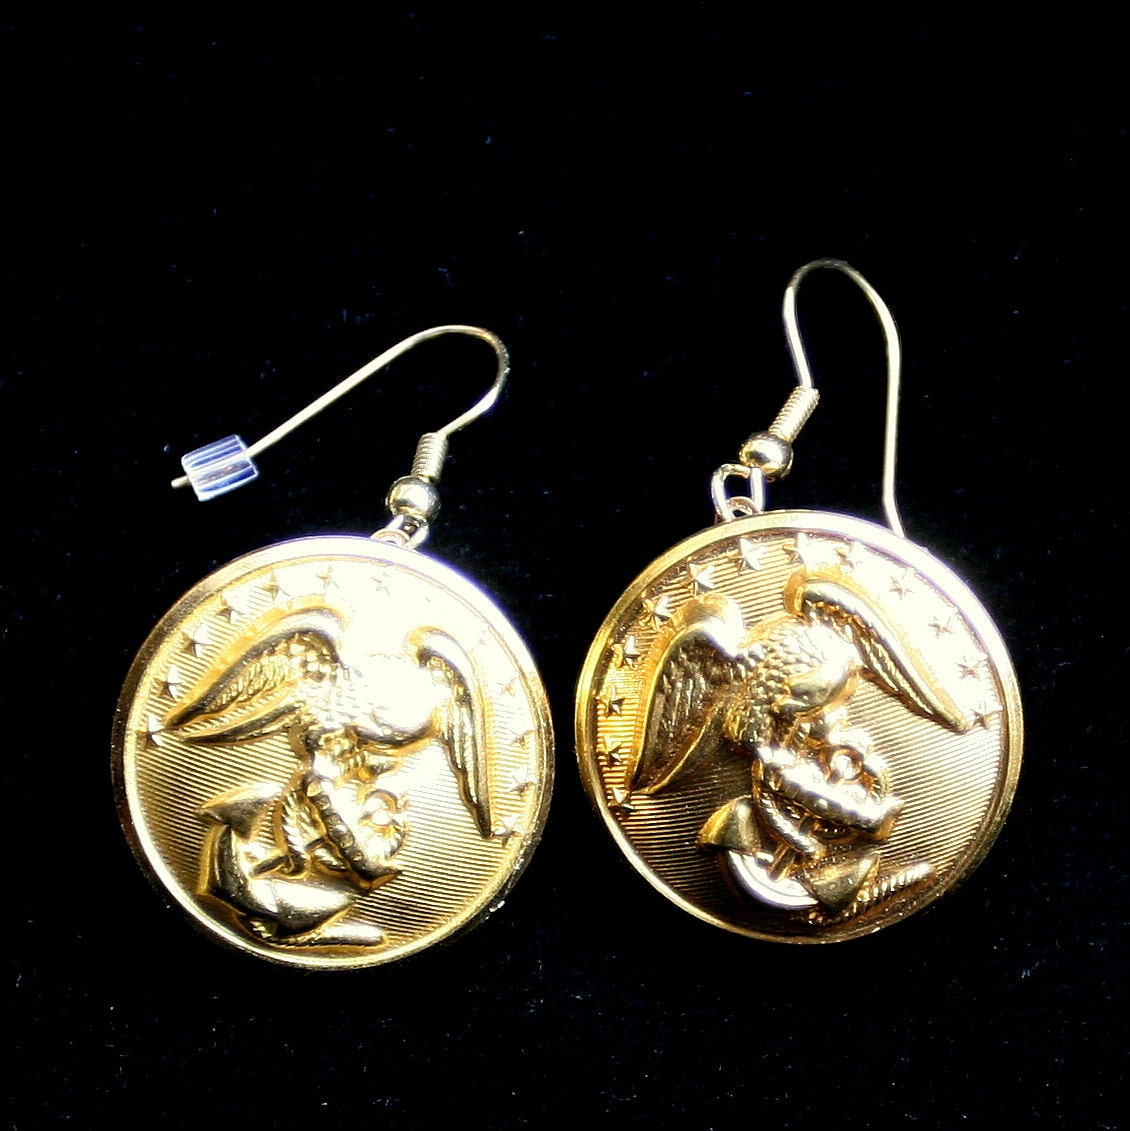 us marine corps sweetheart jewelry earrings made with large. Black Bedroom Furniture Sets. Home Design Ideas